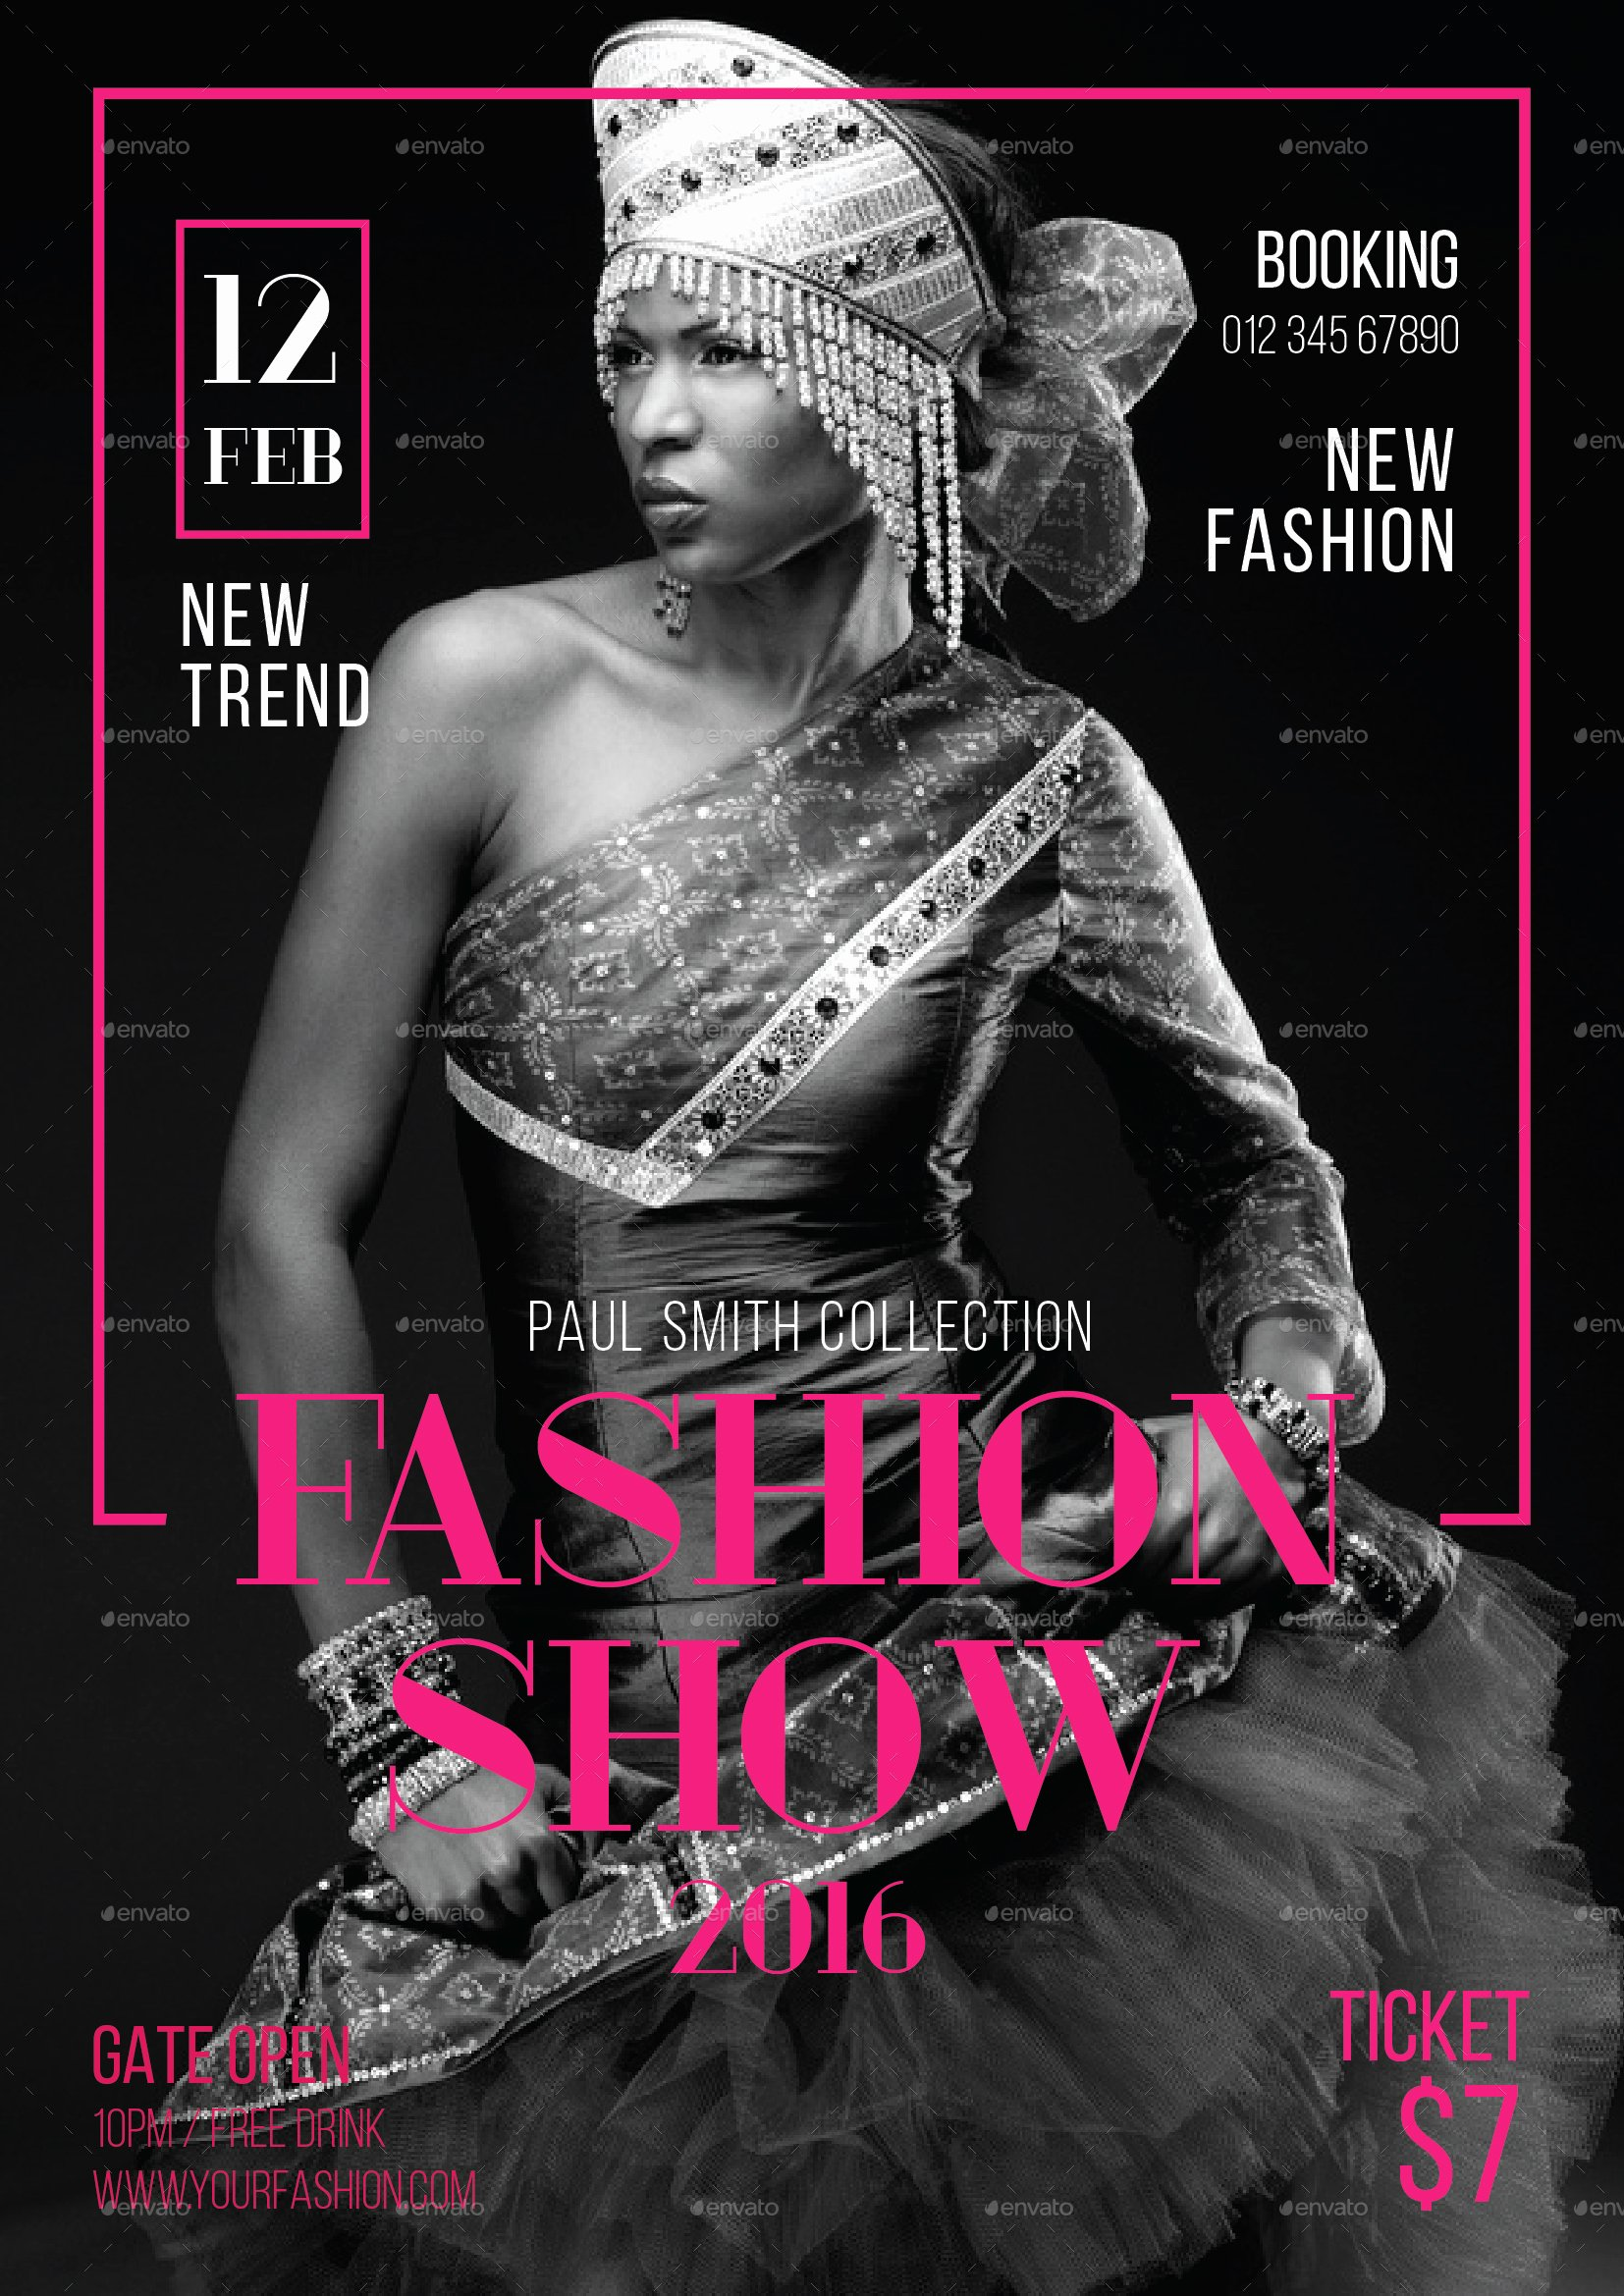 Fashion Show Flyer Template Beautiful Fashion Show Flyer by tokosatsu